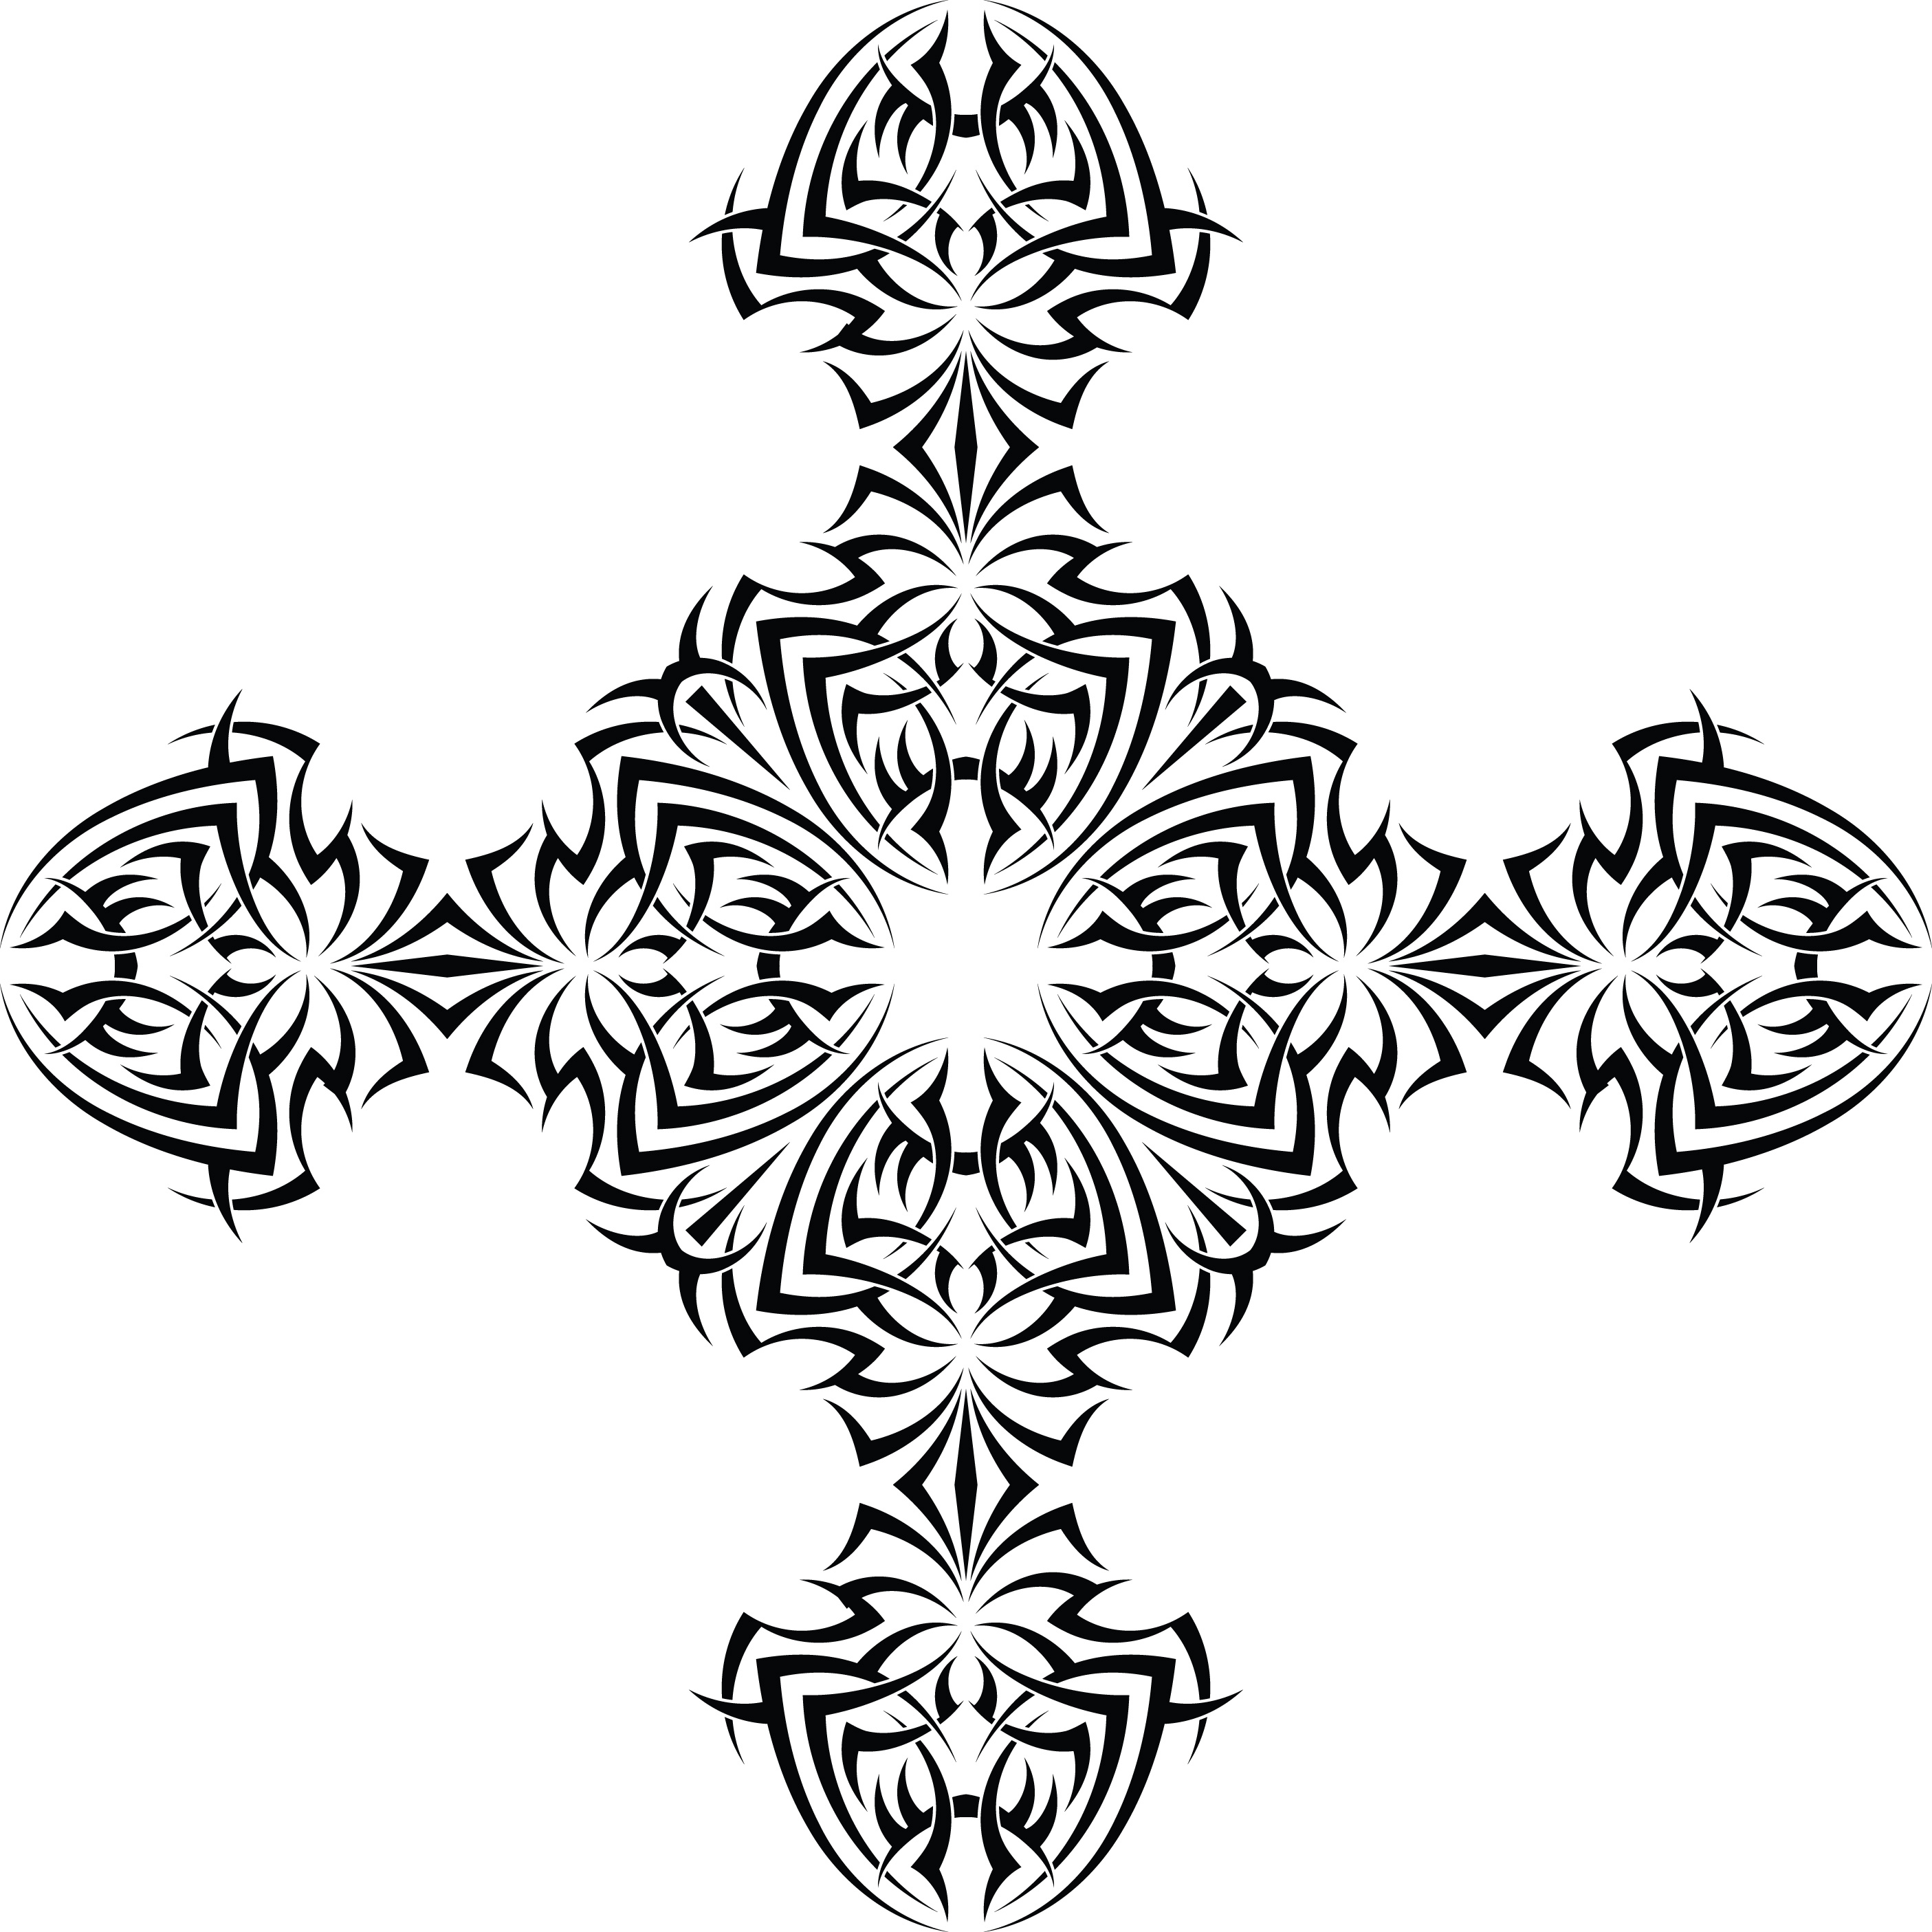 Cross tattoos for man and woman tribal and celtic cross tattoo other non religious meanings of the cross tattoos can be seen as somewhat related to the original religious meanings but re no longer associated with buycottarizona